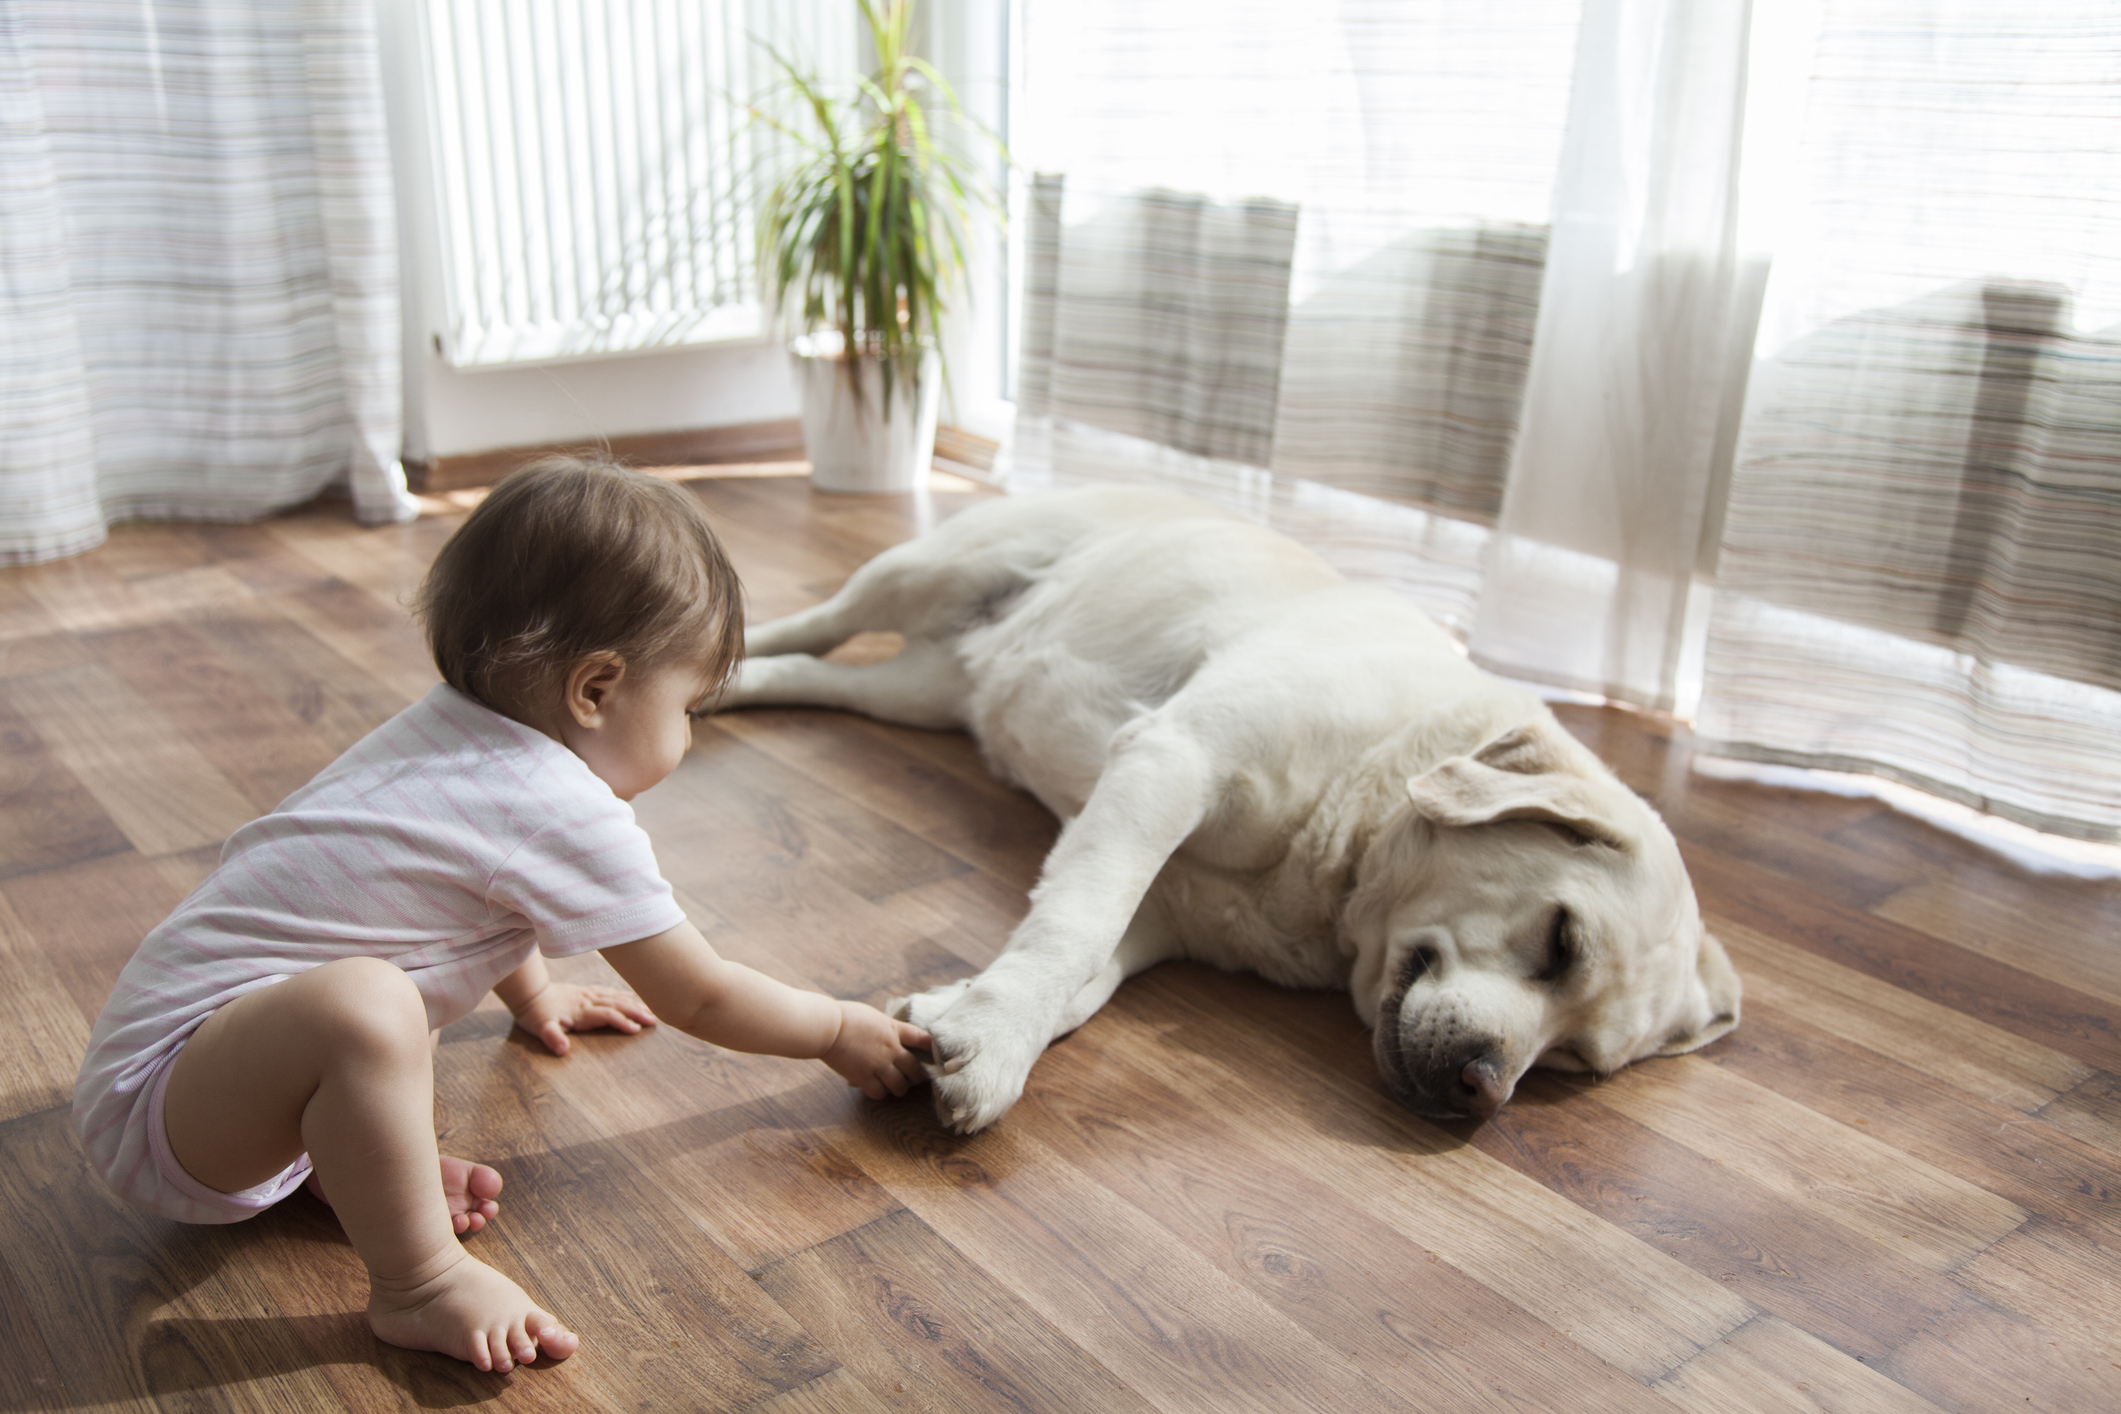 Toddler curiously plays with an old Labrador in a brightly lit family room